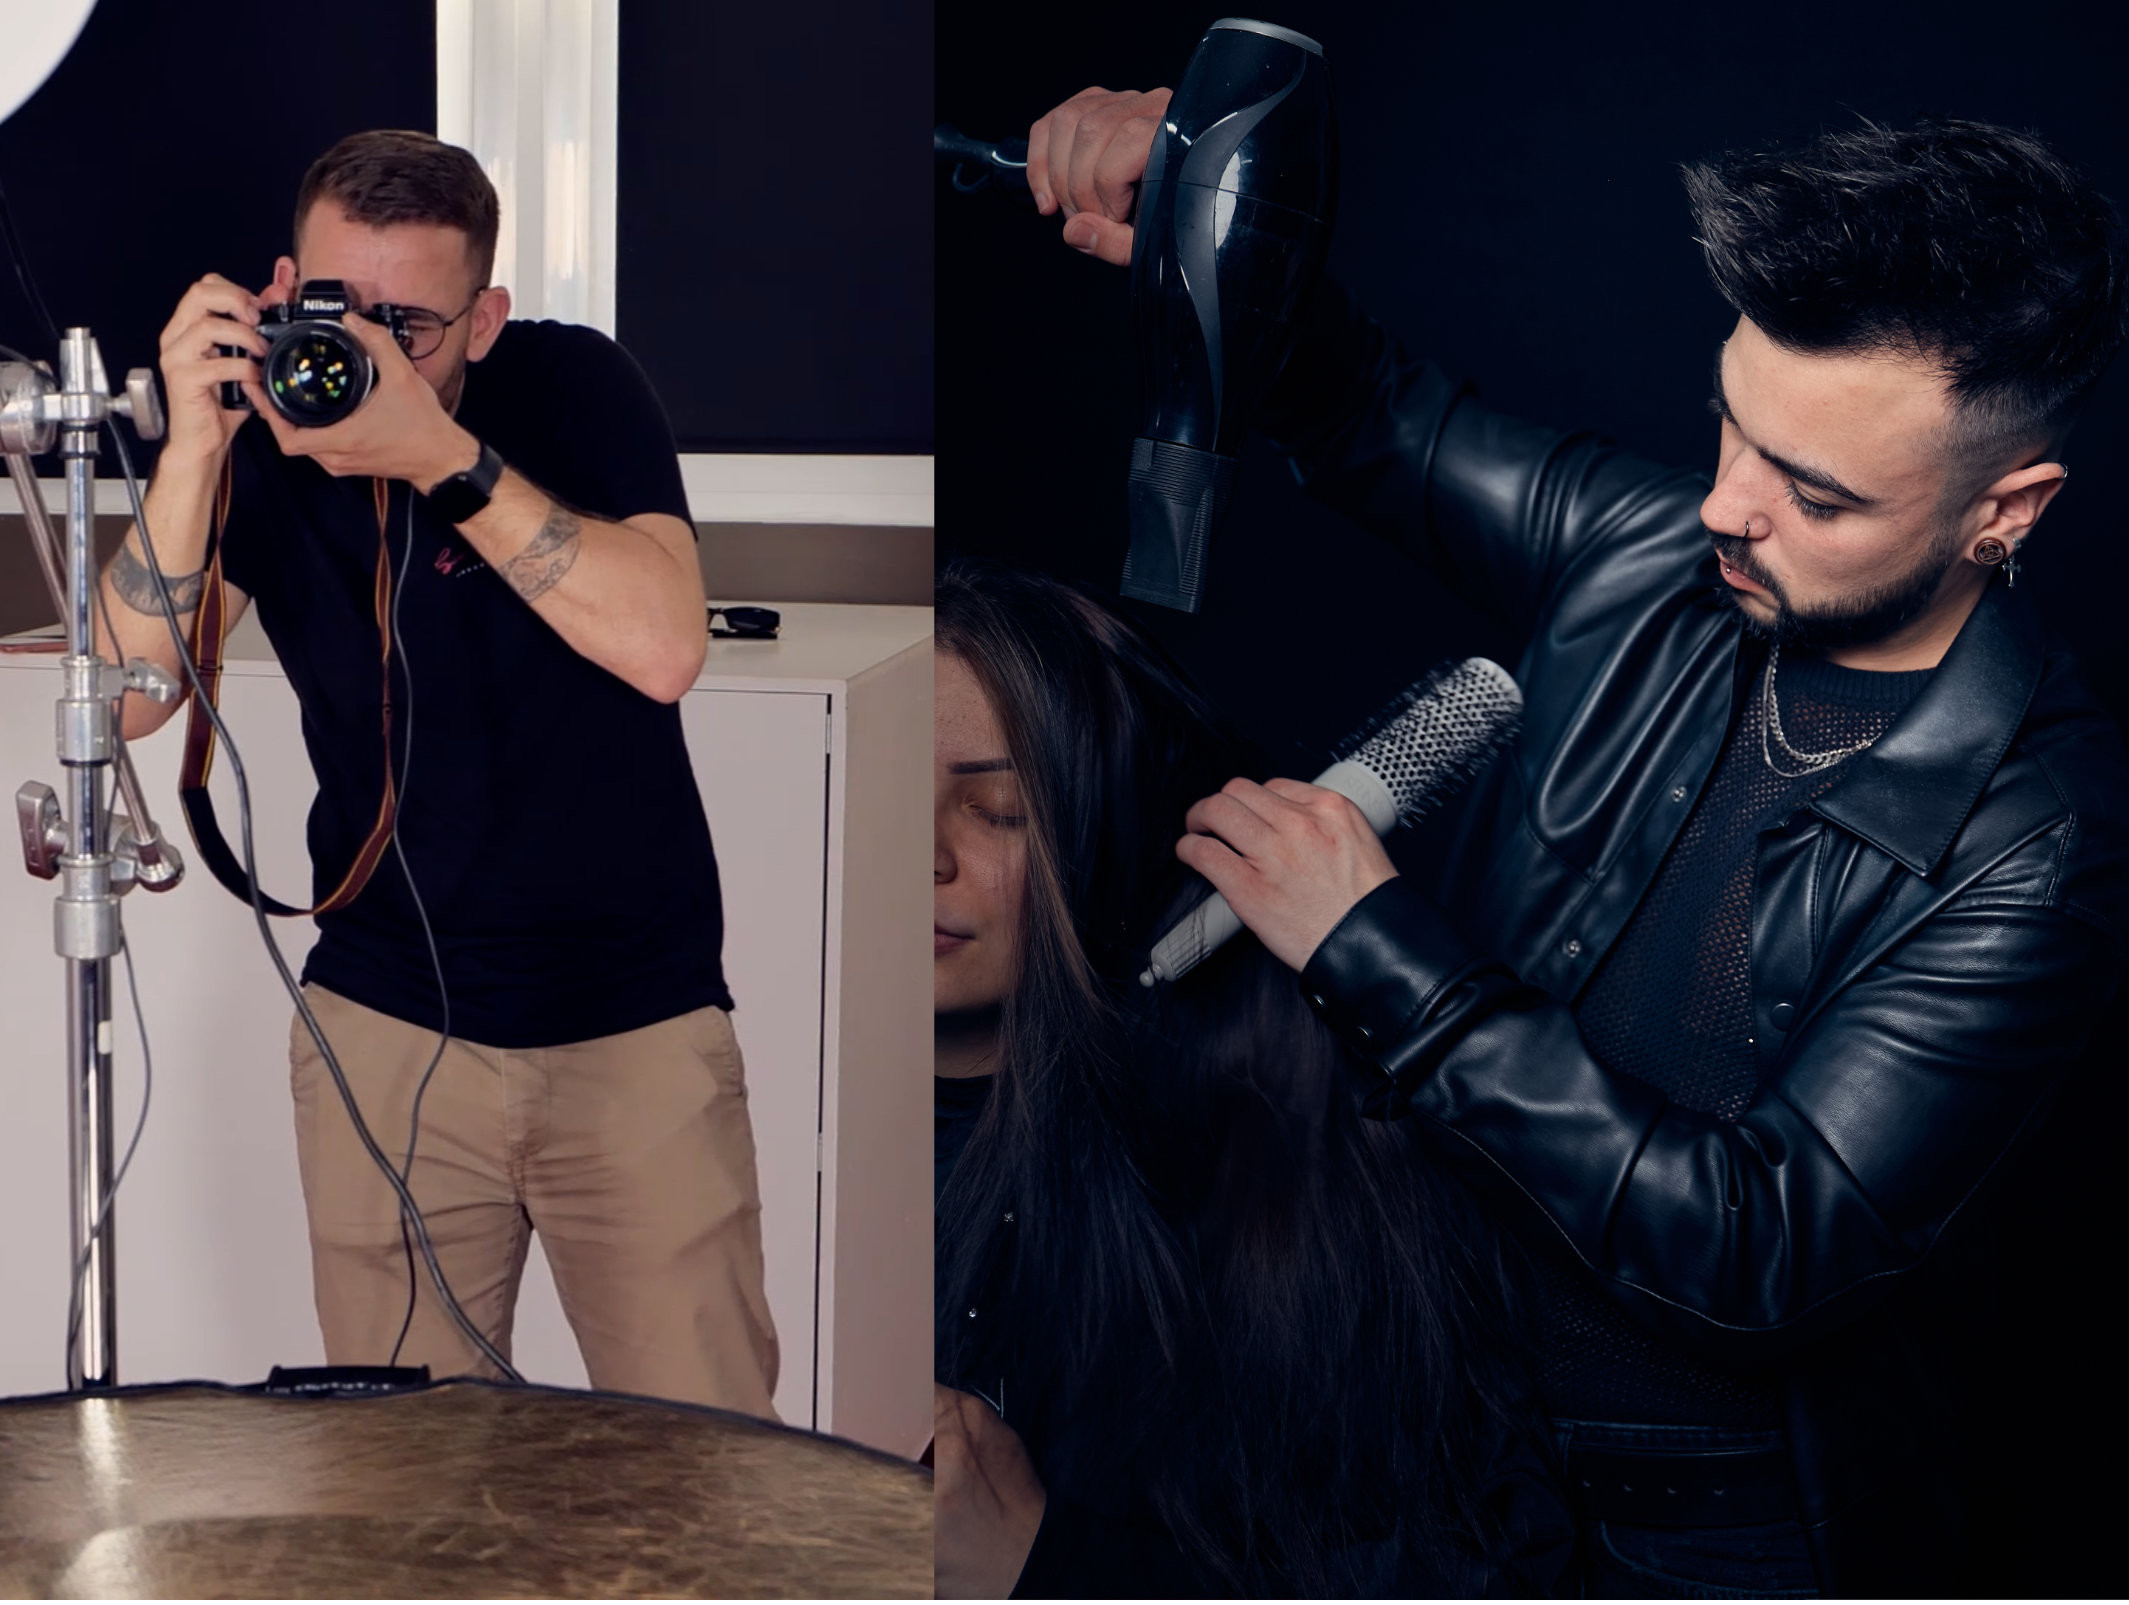 shooting + coiffure OU maquillage